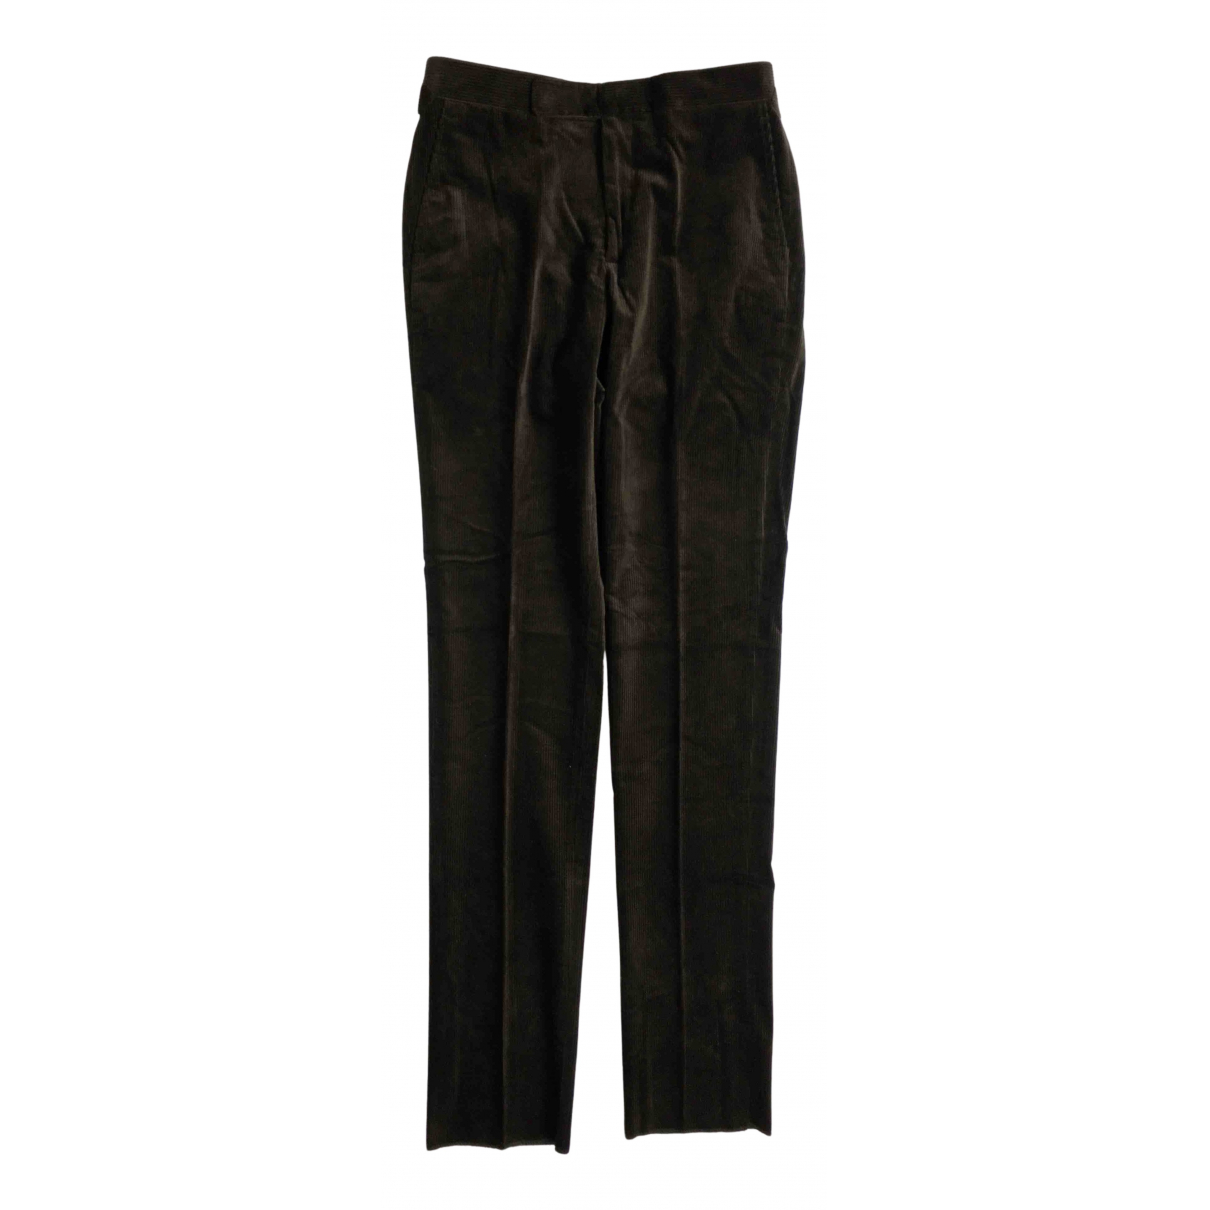 Polo Ralph Lauren N Brown Cotton Trousers for Men 32 UK - US